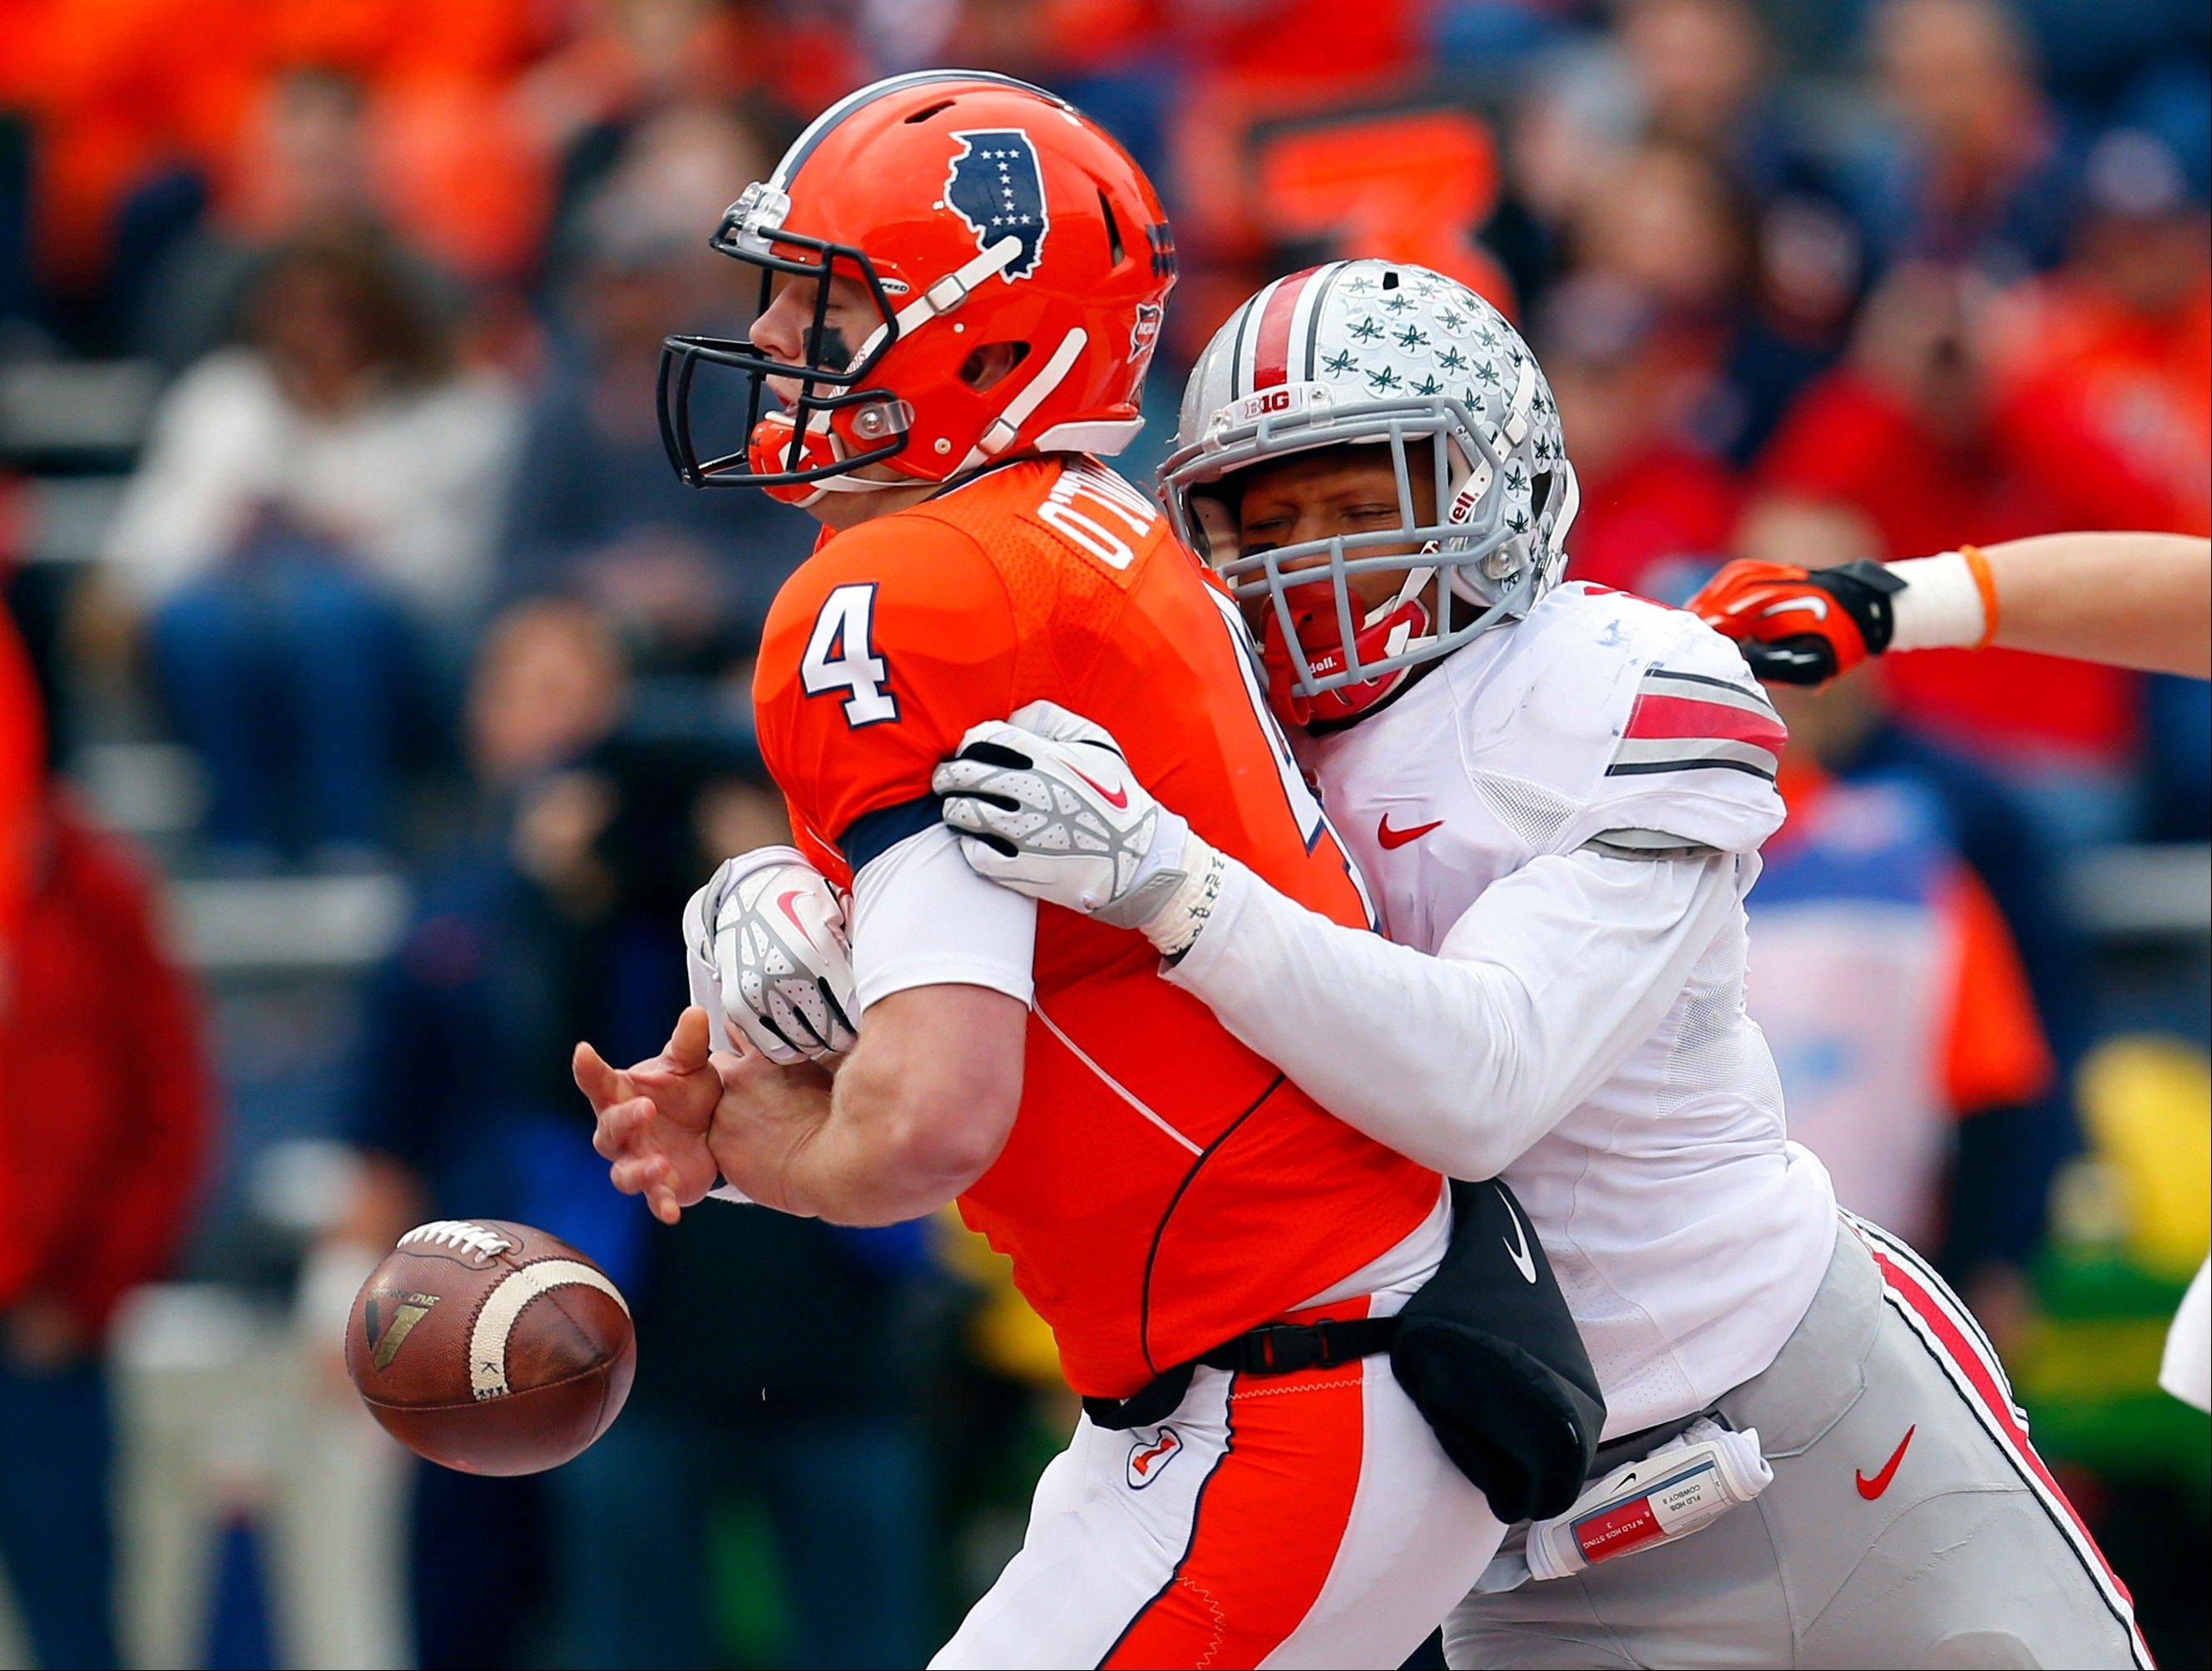 Ohio State safety Christian Bryant strips the ball from Illinois quarterback Reilly O'Toole during the second half of last Saturday's 60-35 win in Champaign, Ill.